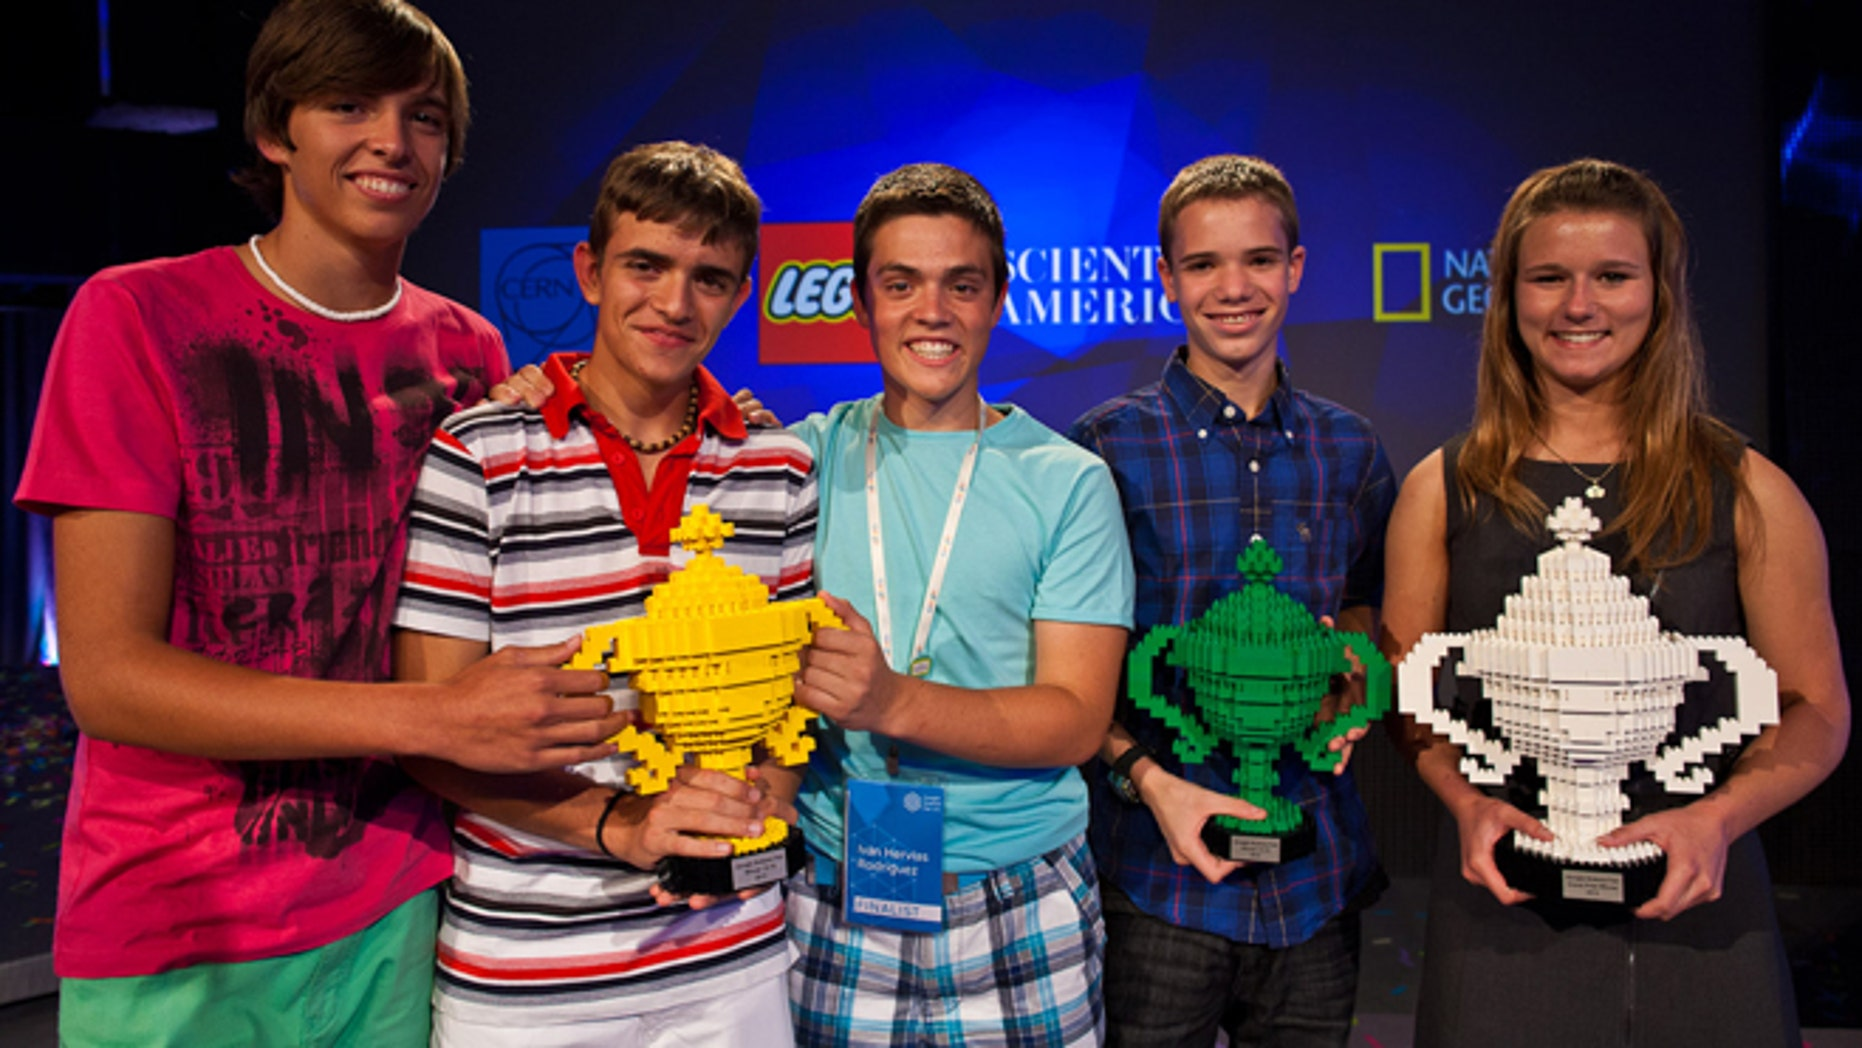 July 24, 2012: The winners of the 2012 Google Science Fair receive prizes from Google and partners CERN, LEGO, National Geographic and Scientific American.